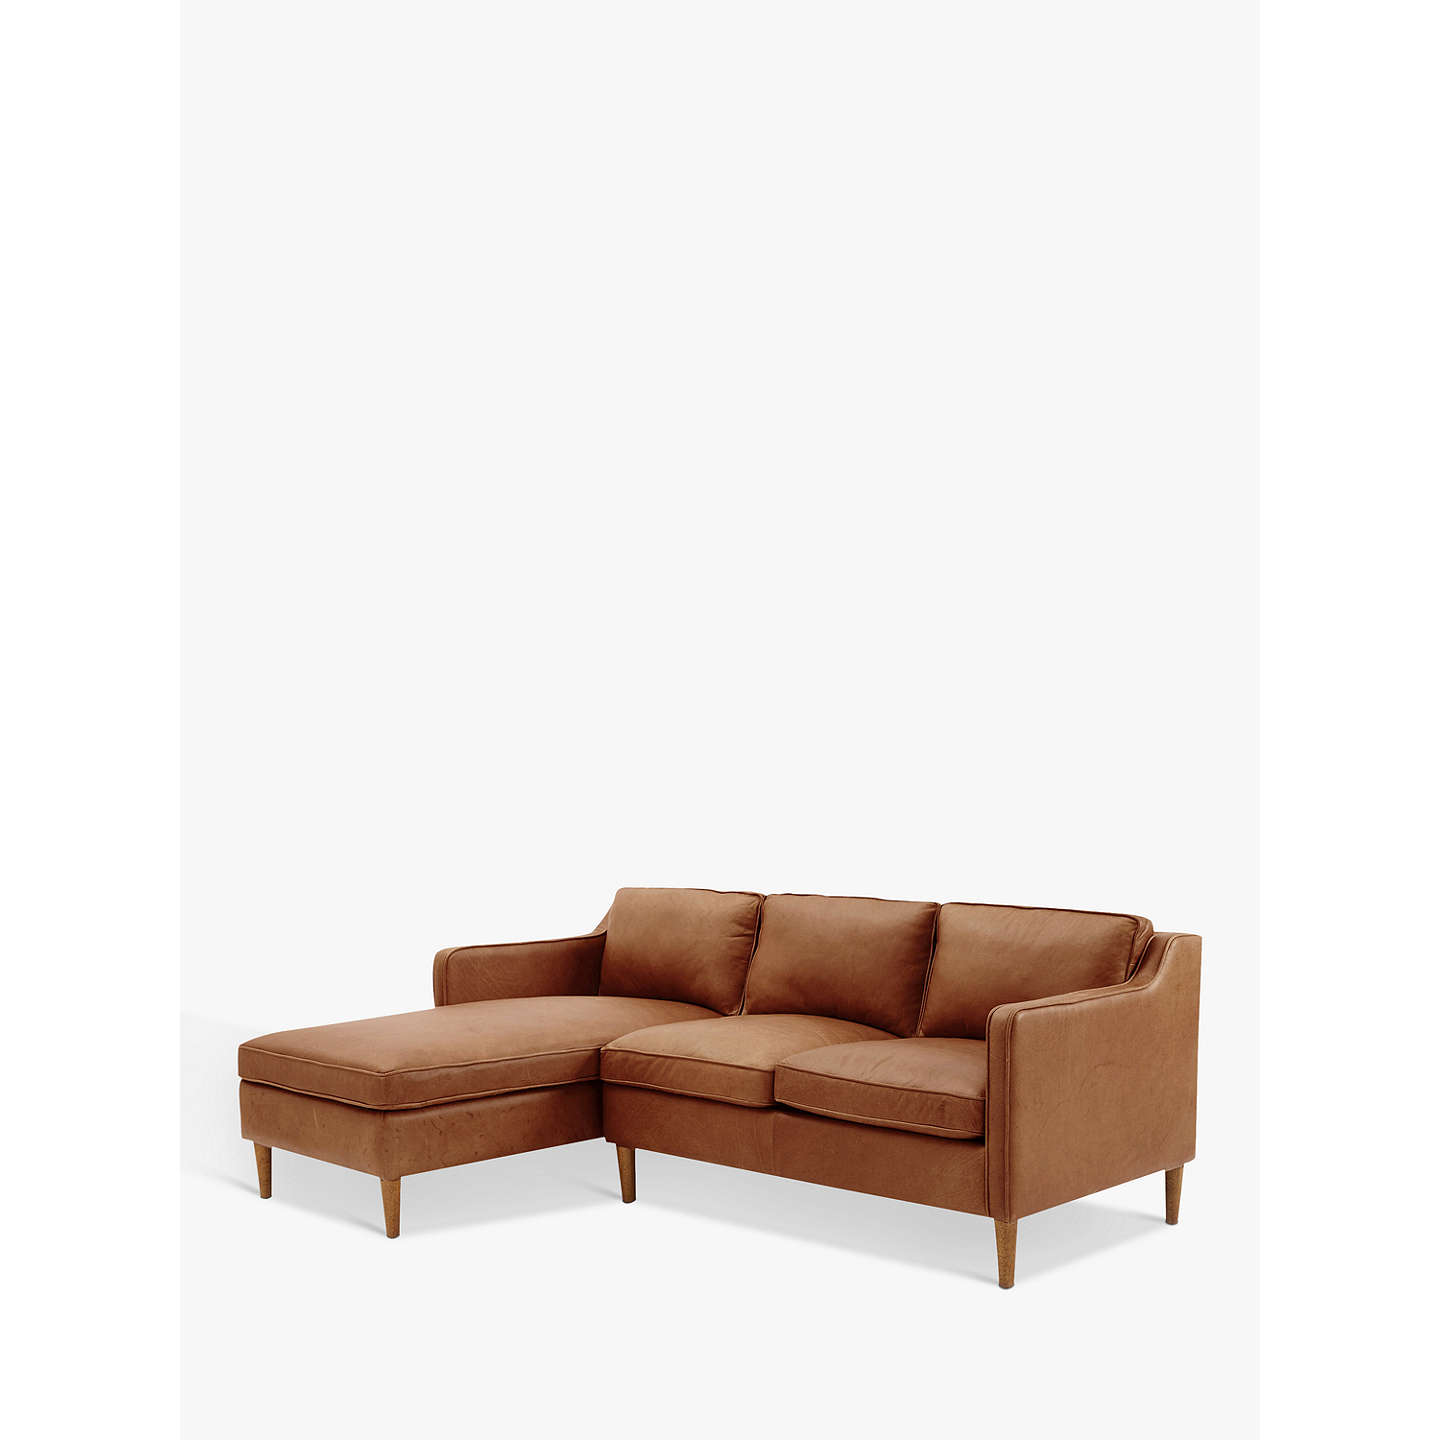 genuine loveseats tan zoom hover leather loveseat living room abby to brown brick the product furniture item